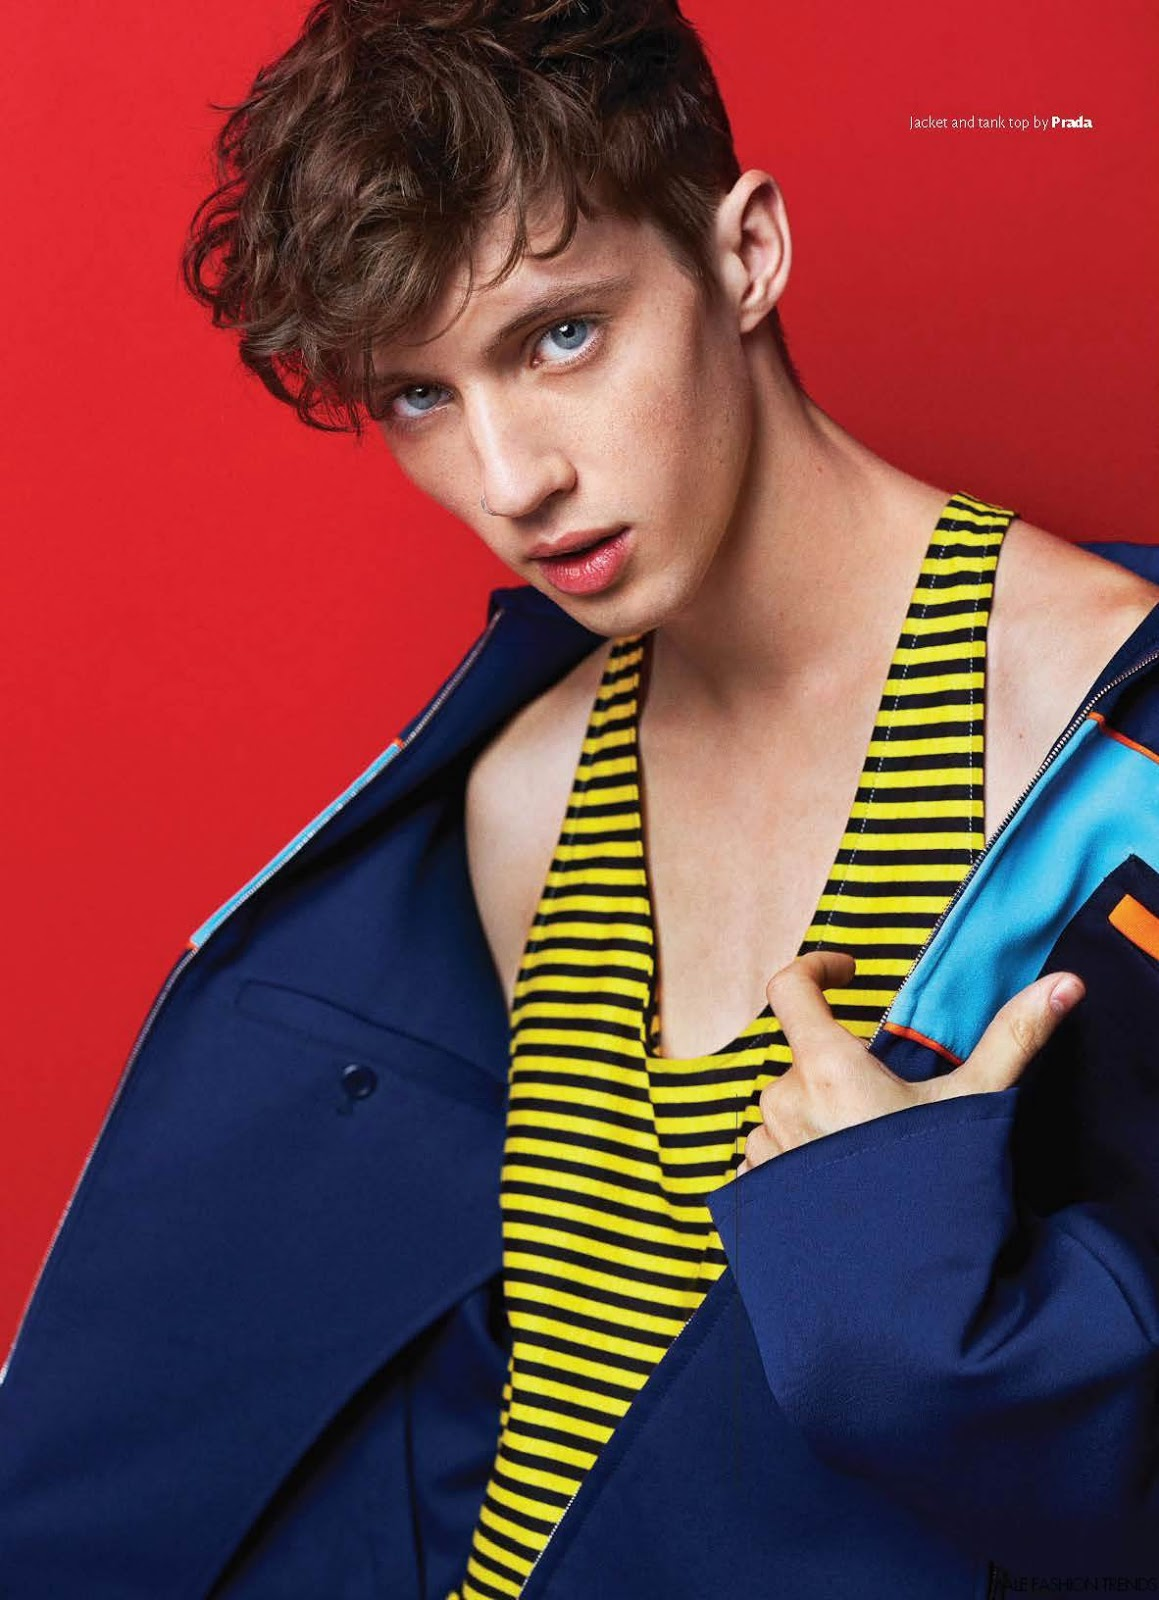 Smart Cute Boy Wallpaper These Are The 10 Best Pictures Of Troye Sivan With His